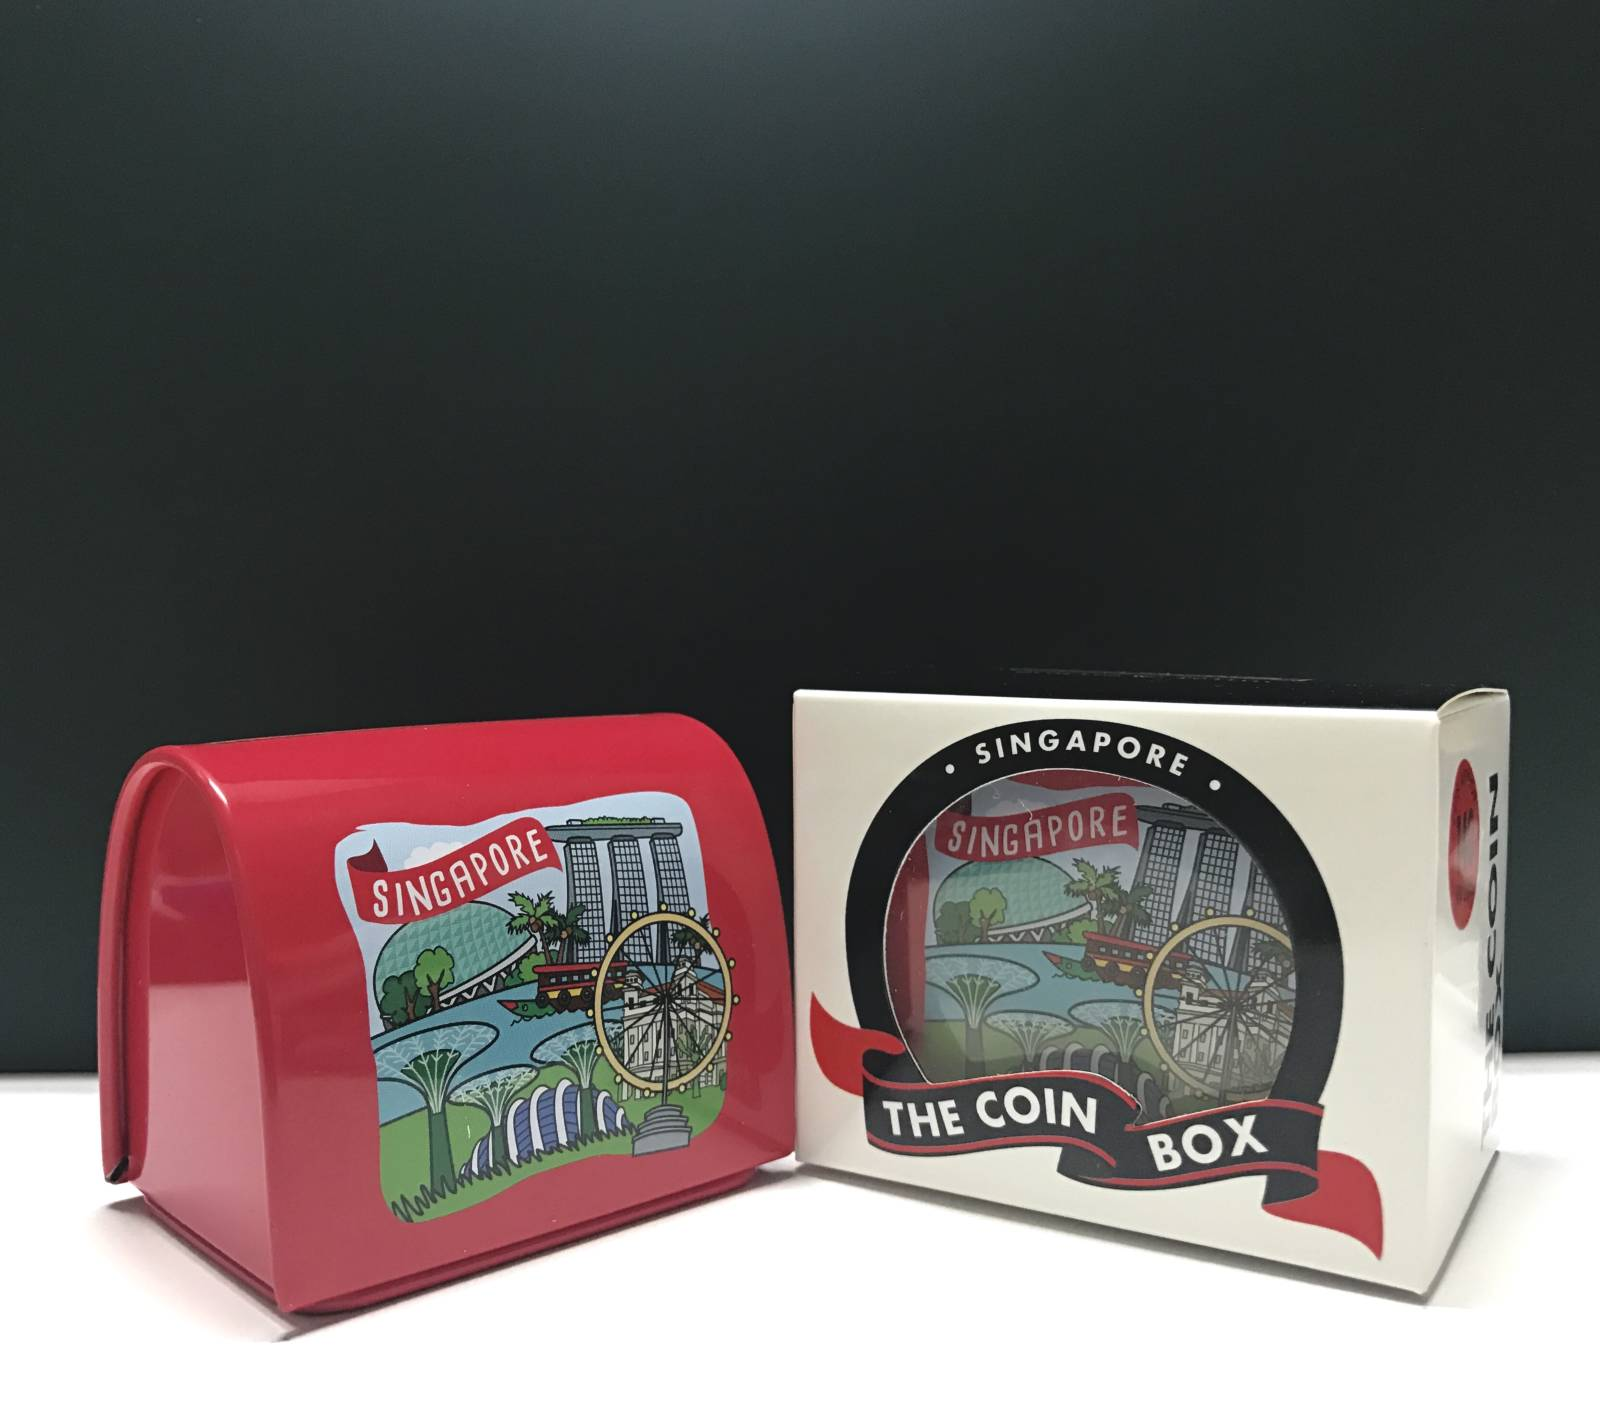 Little Red Box The Coin Box, $6.90